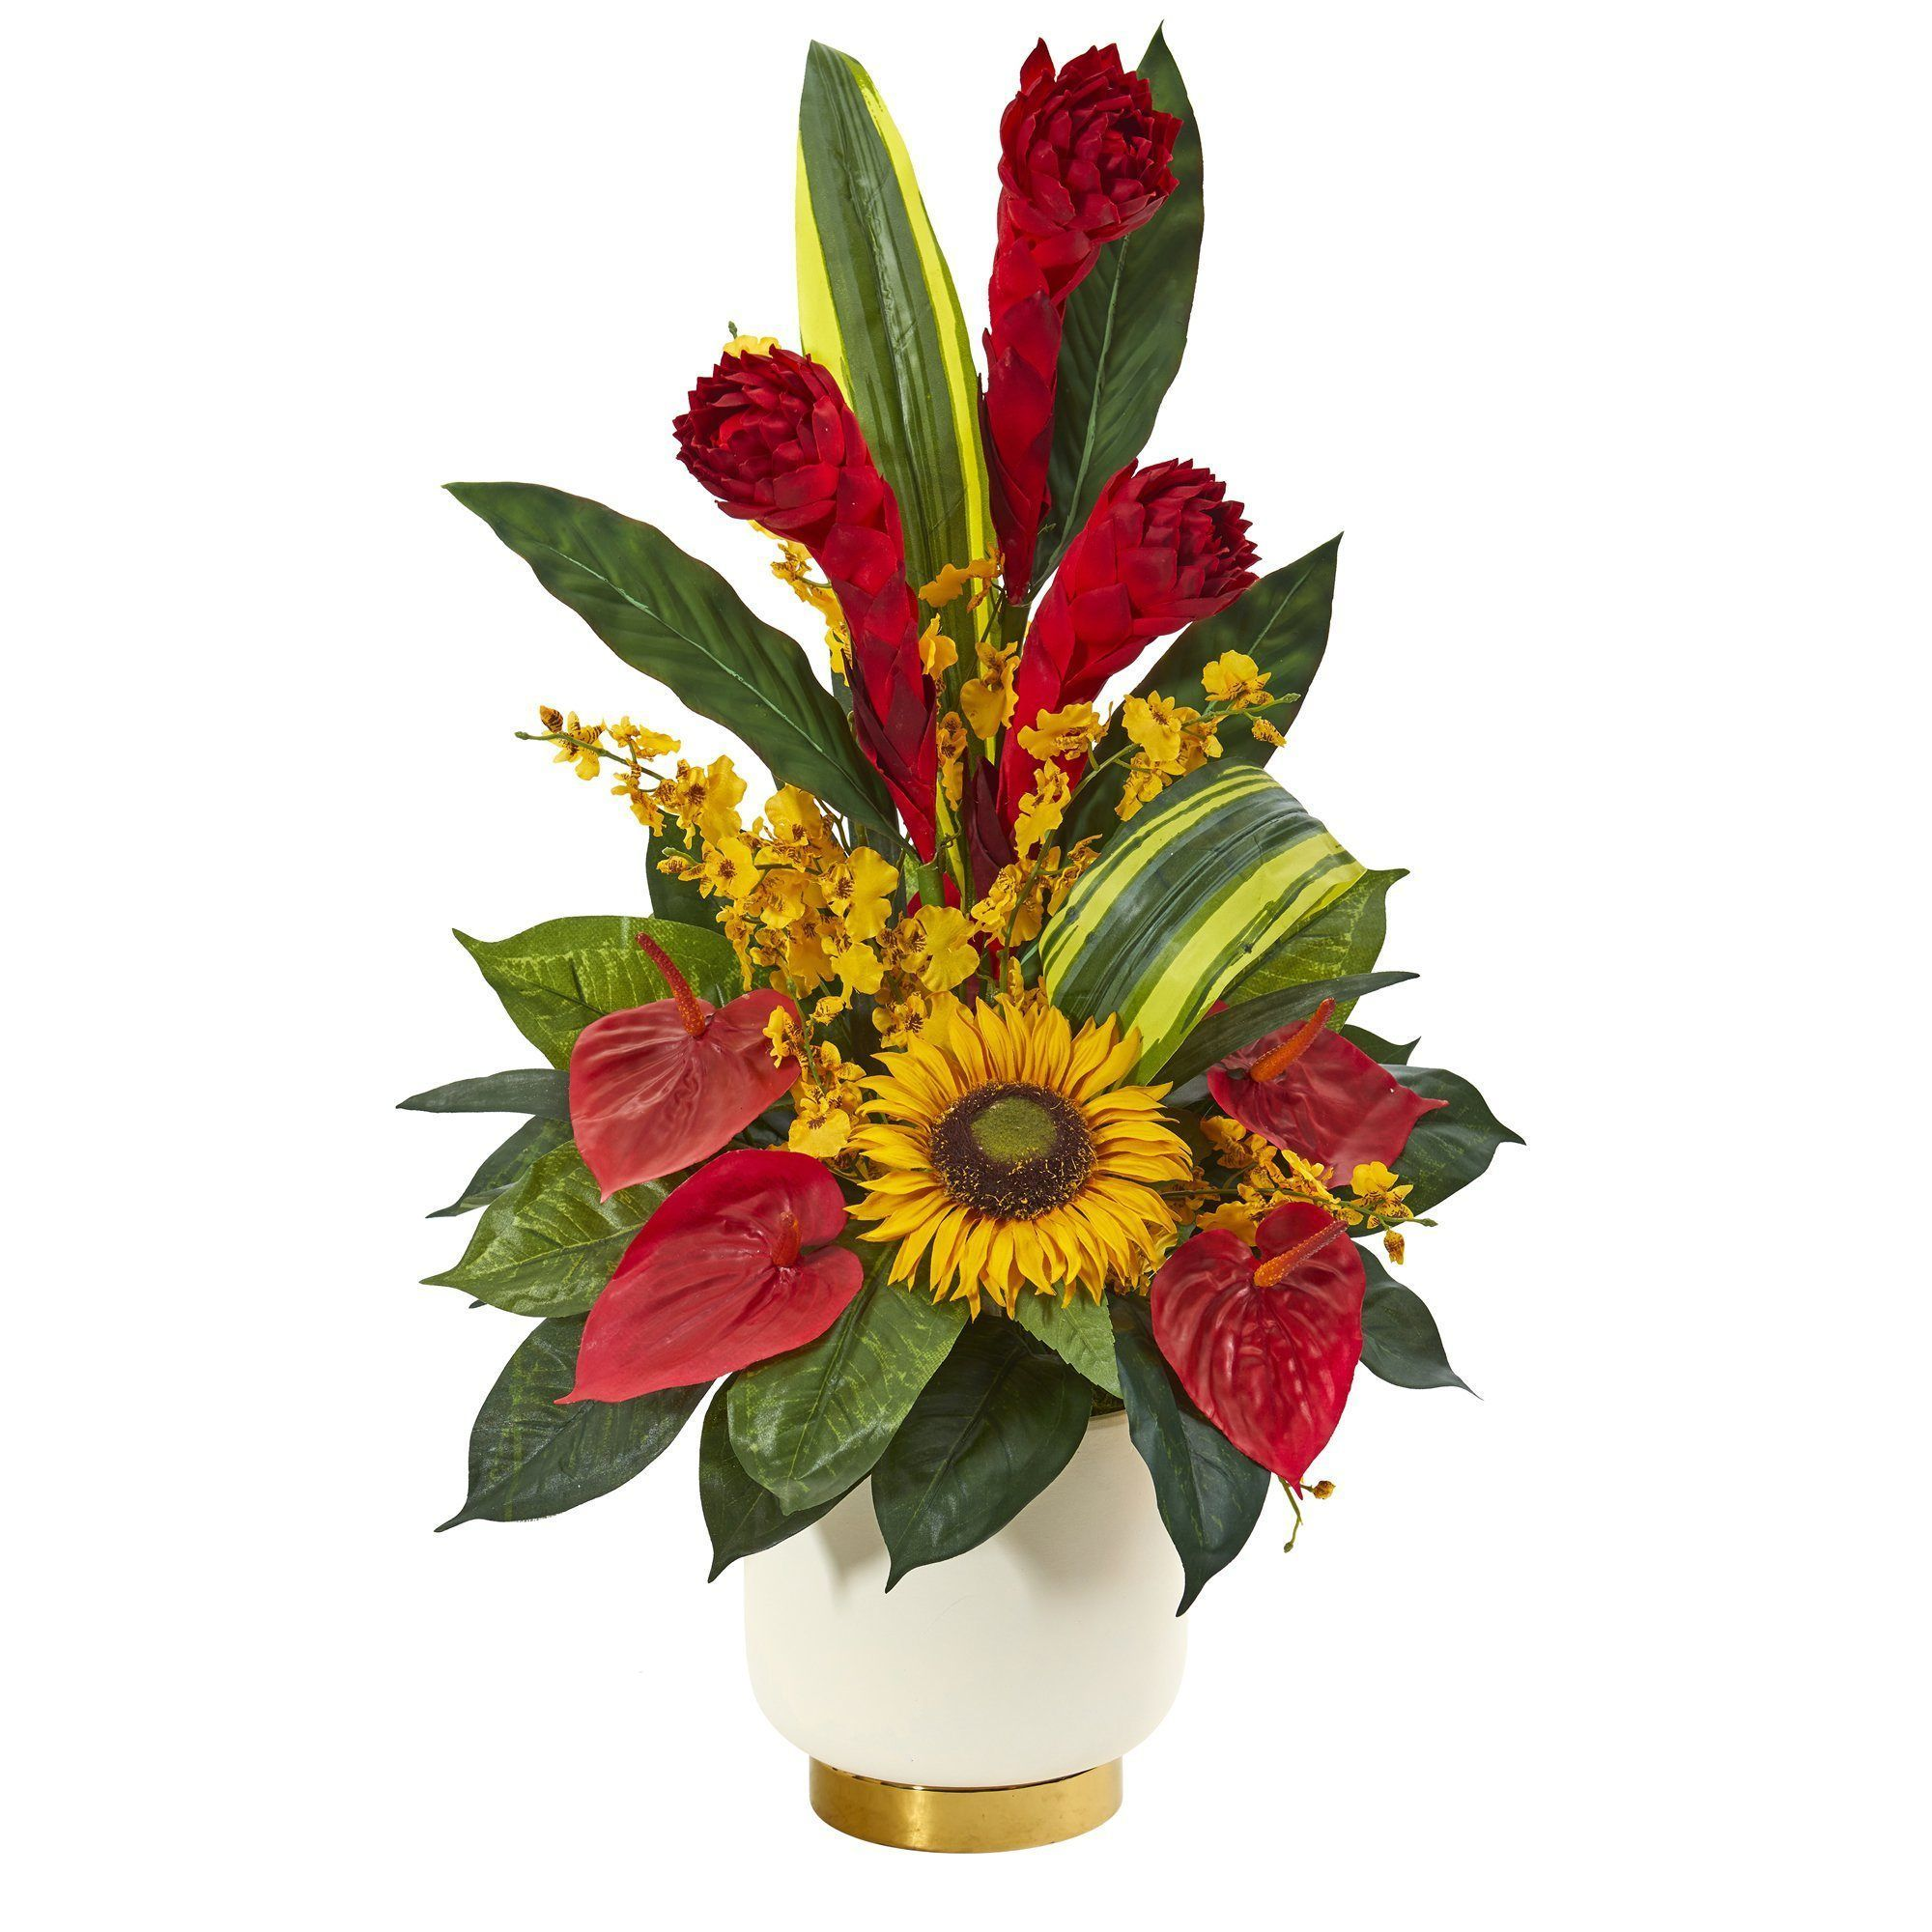 30 Mixed Tropical Floral Artificial Arrangement In Cream Vase With Gold Base In 2020 Tropical Floral Arrangements Tropical Flower Arrangements Large Floral Arrangements